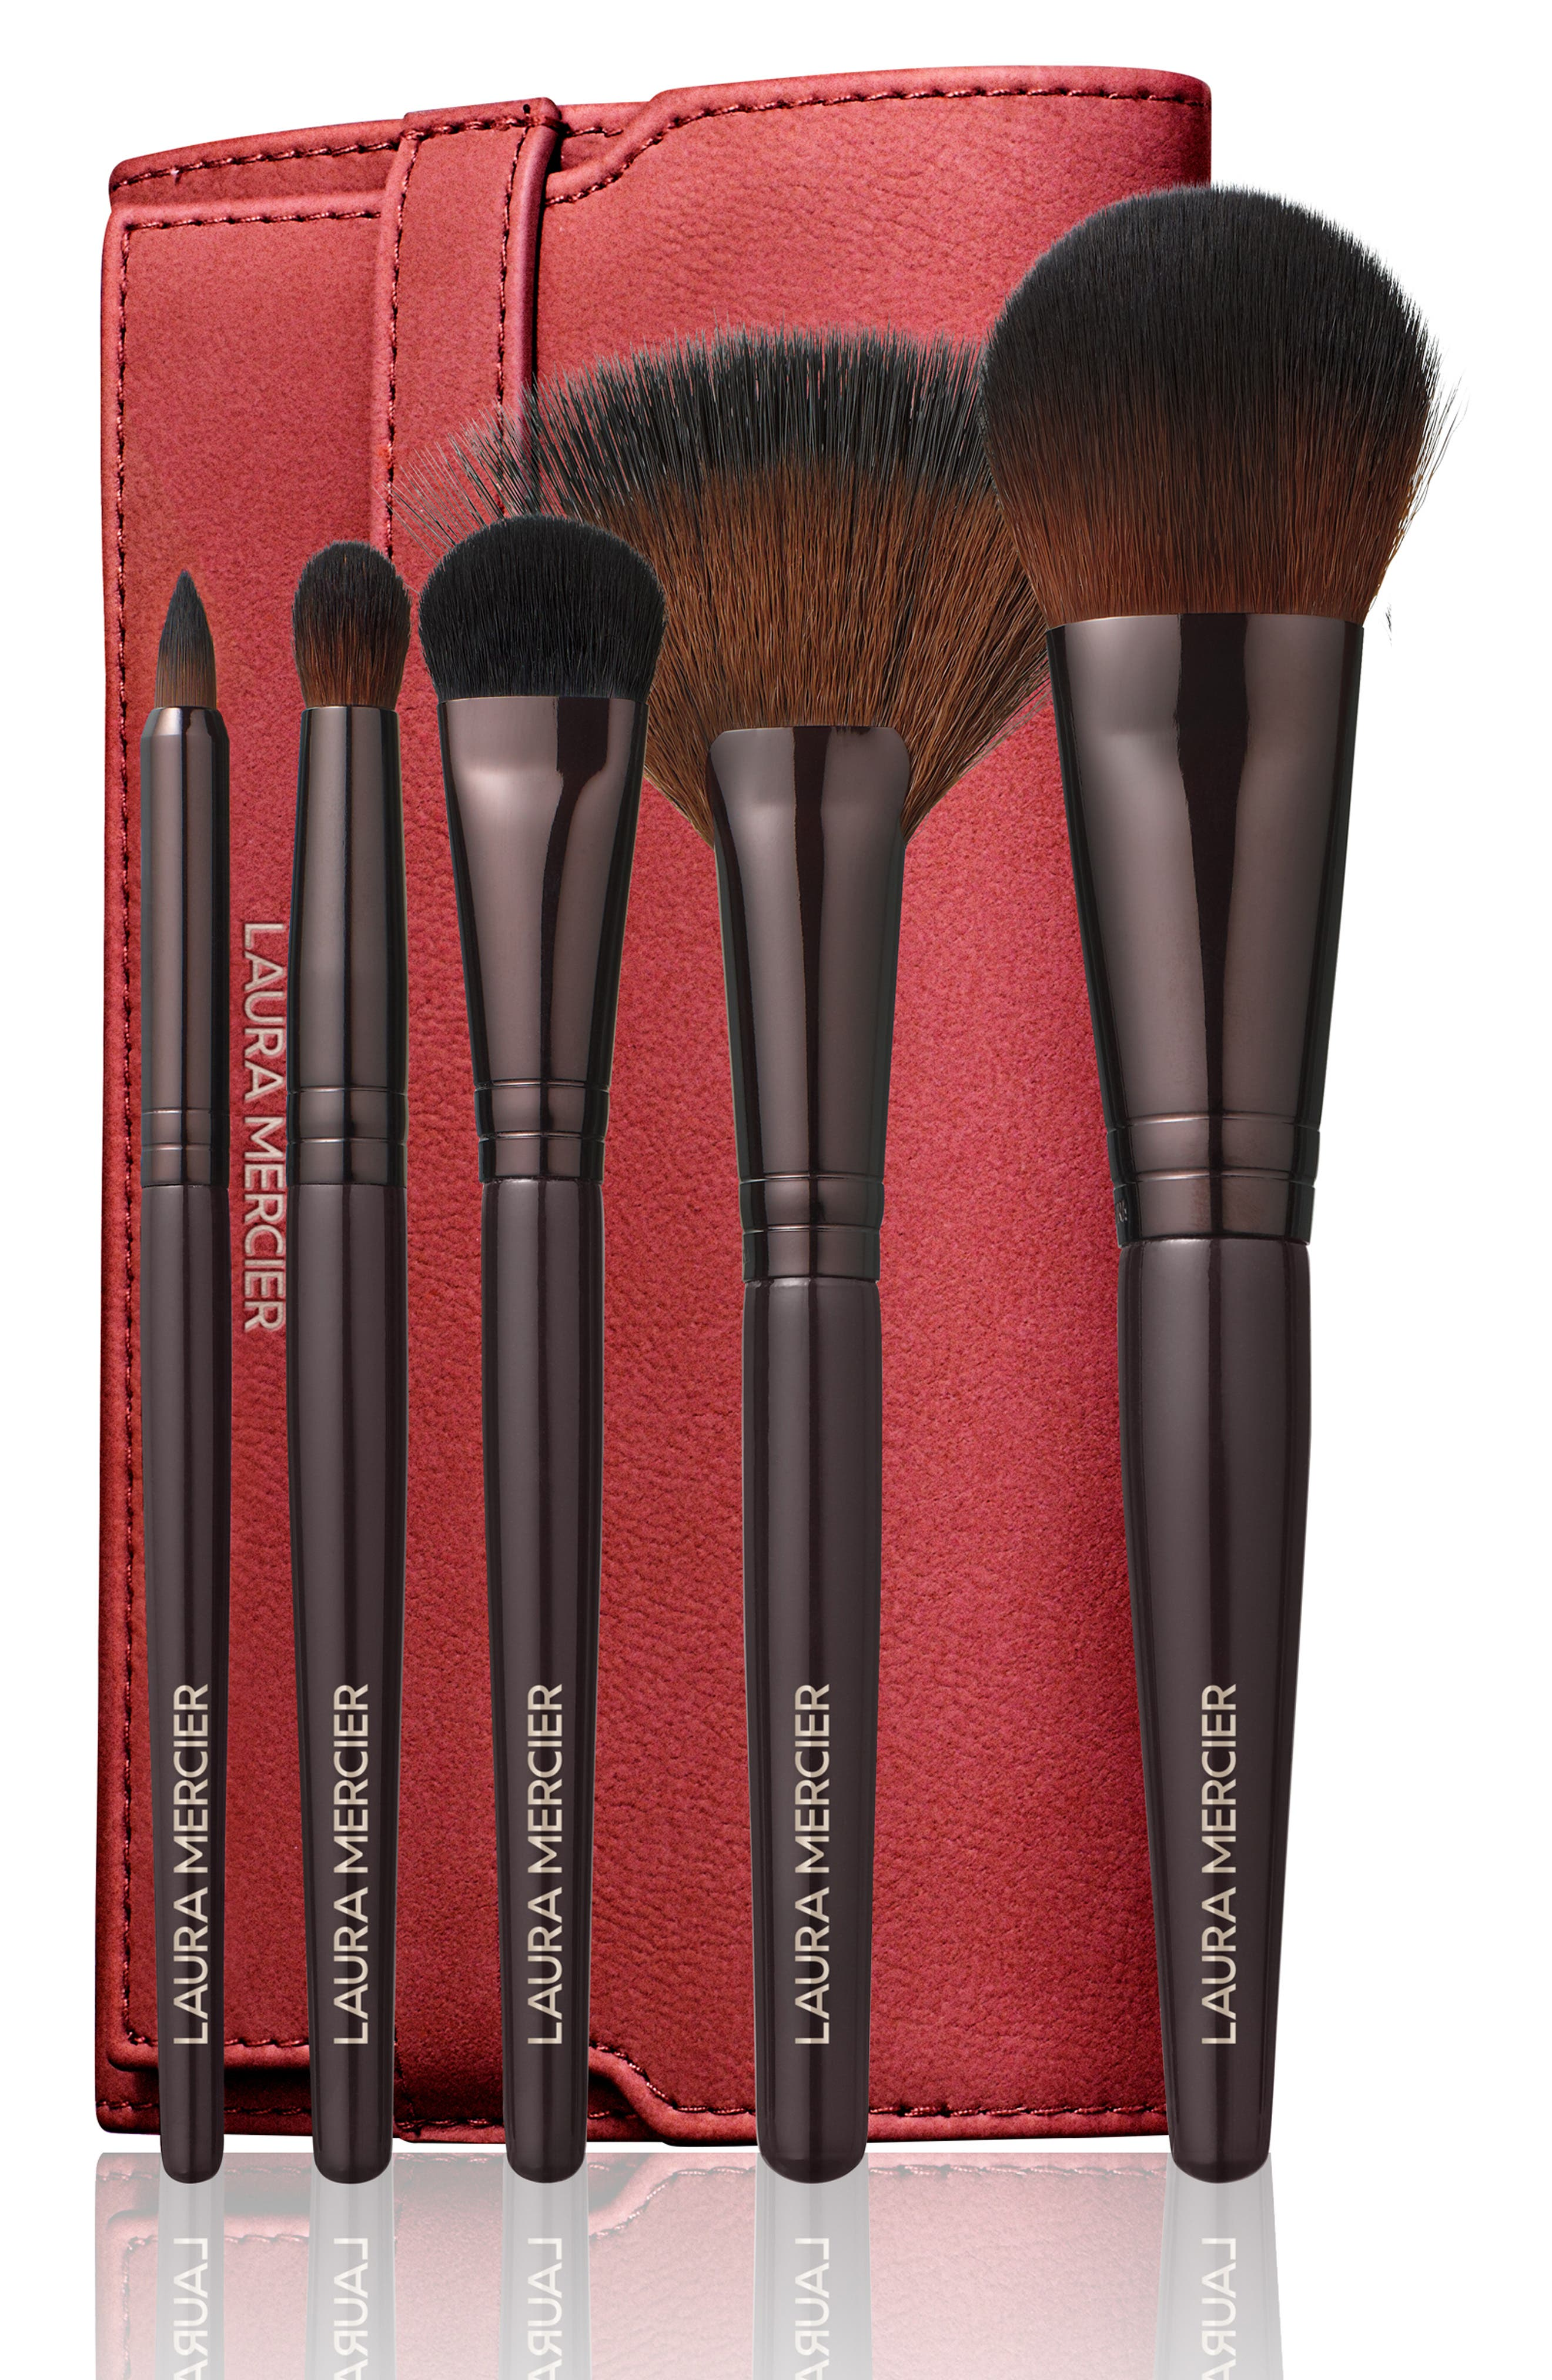 Paint The Town Travel Size Brush Set by Laura Mercier